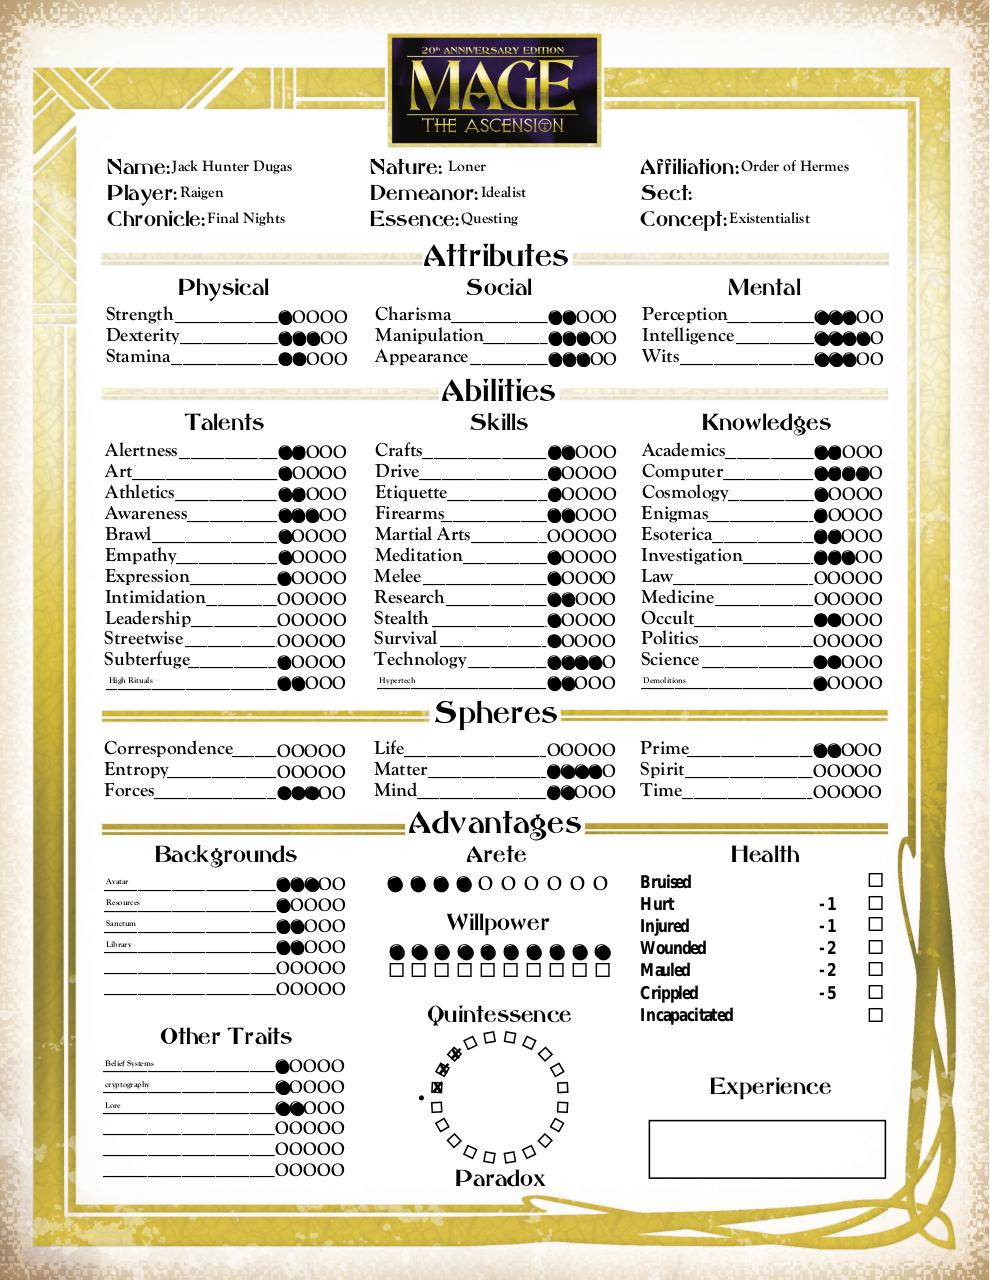 Mage The Ascension 20th Anniversary Edition Character Sheet By